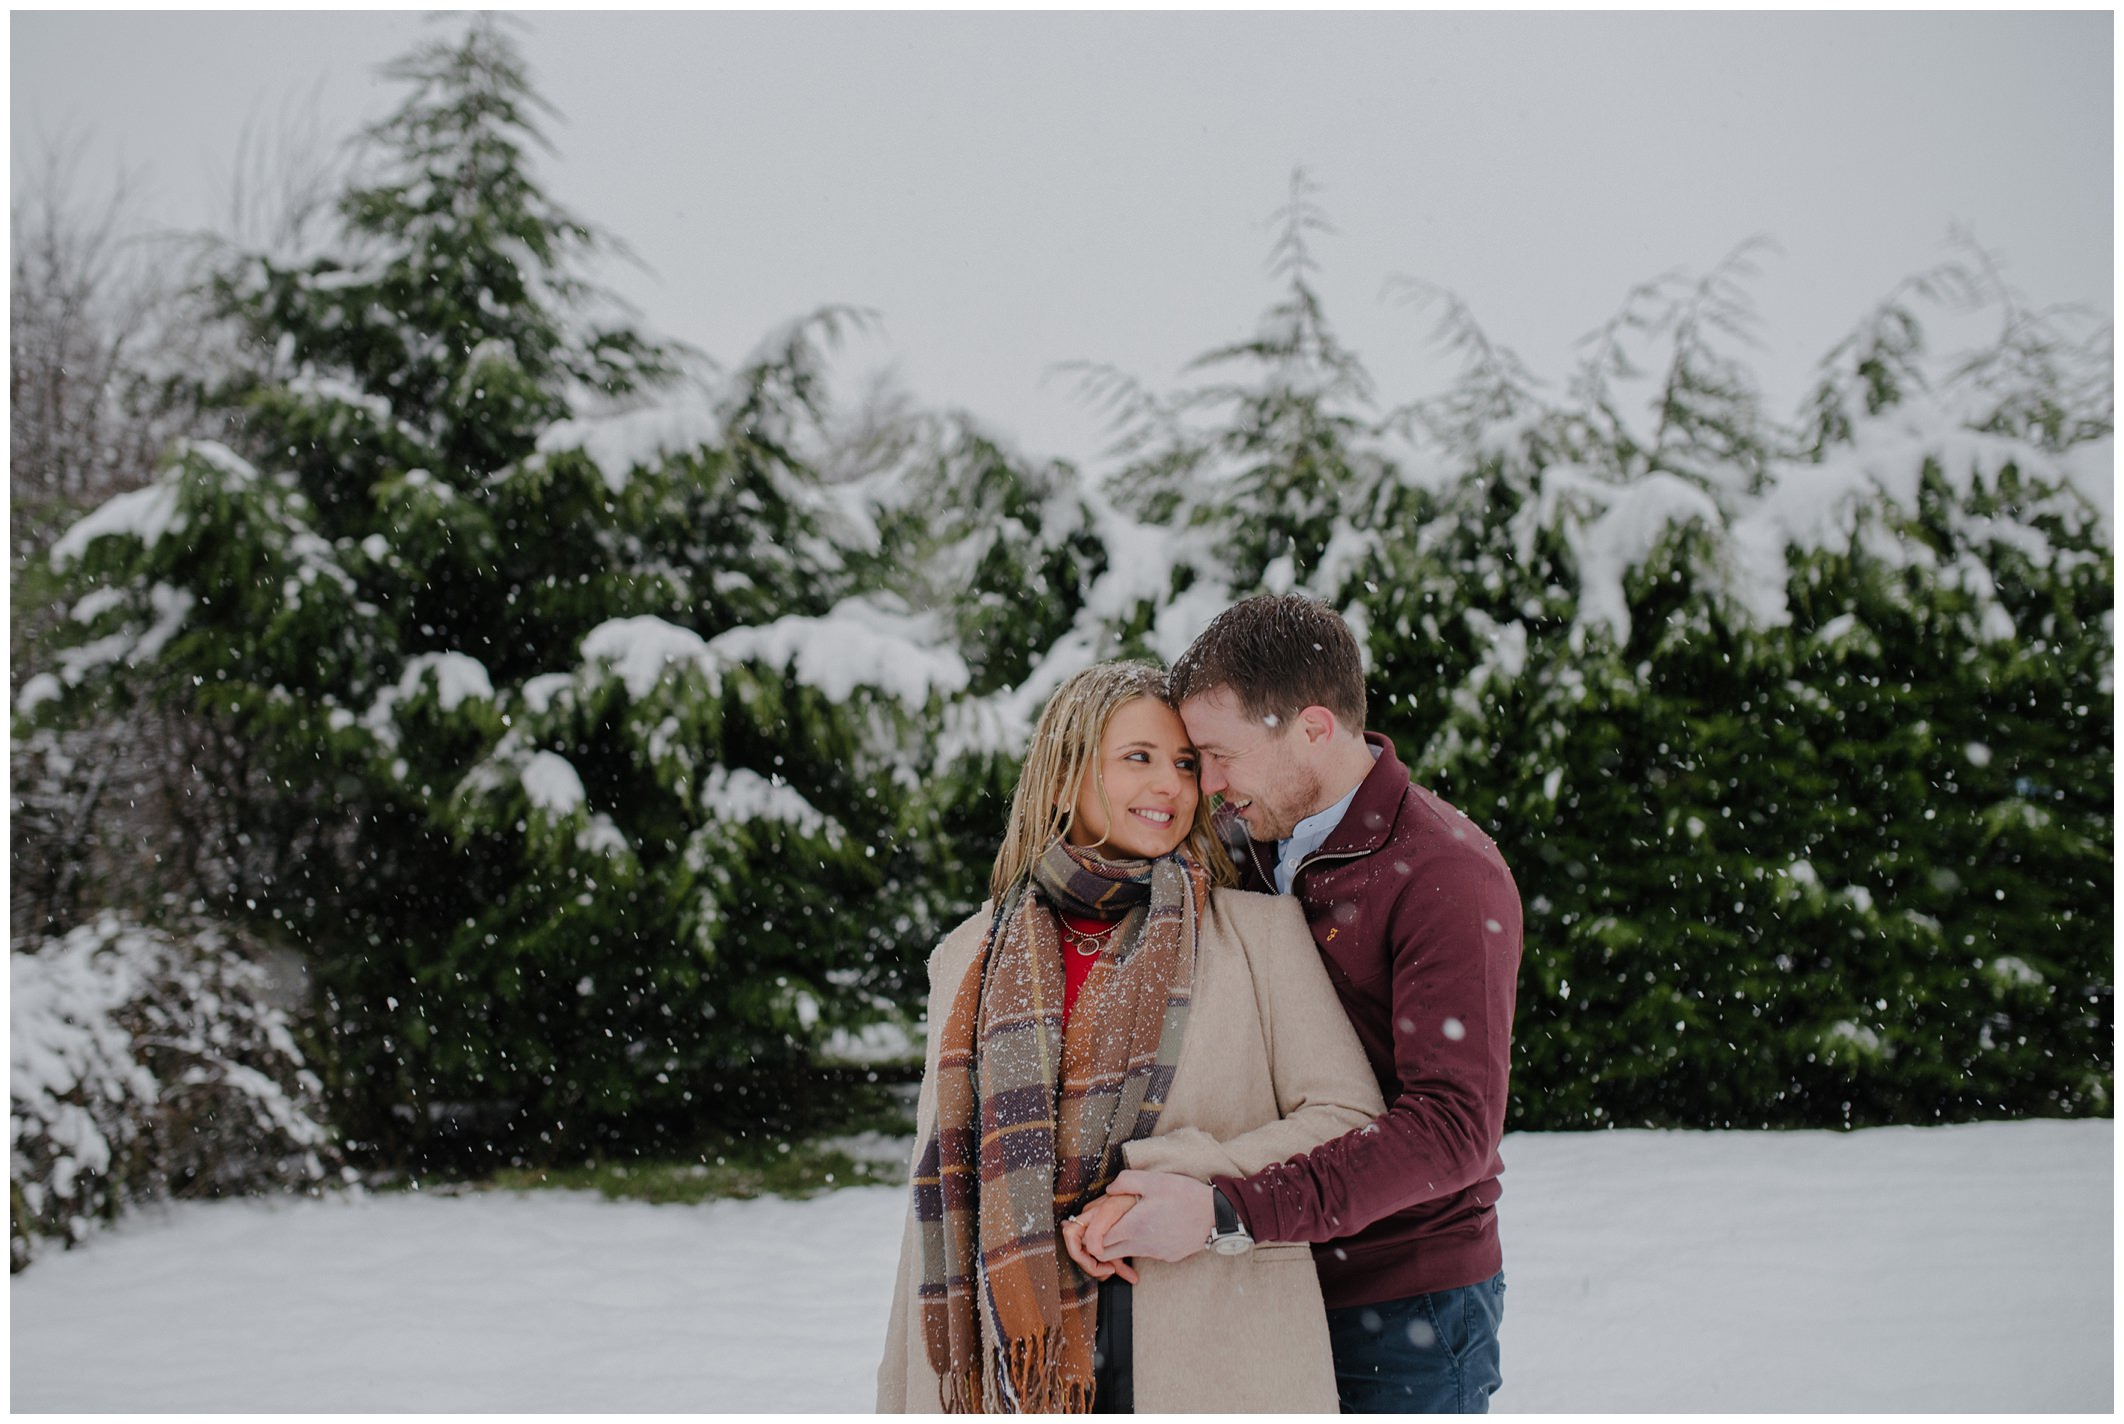 adela_rossa_pre_wedding_jude_browne_photography_0020.jpg